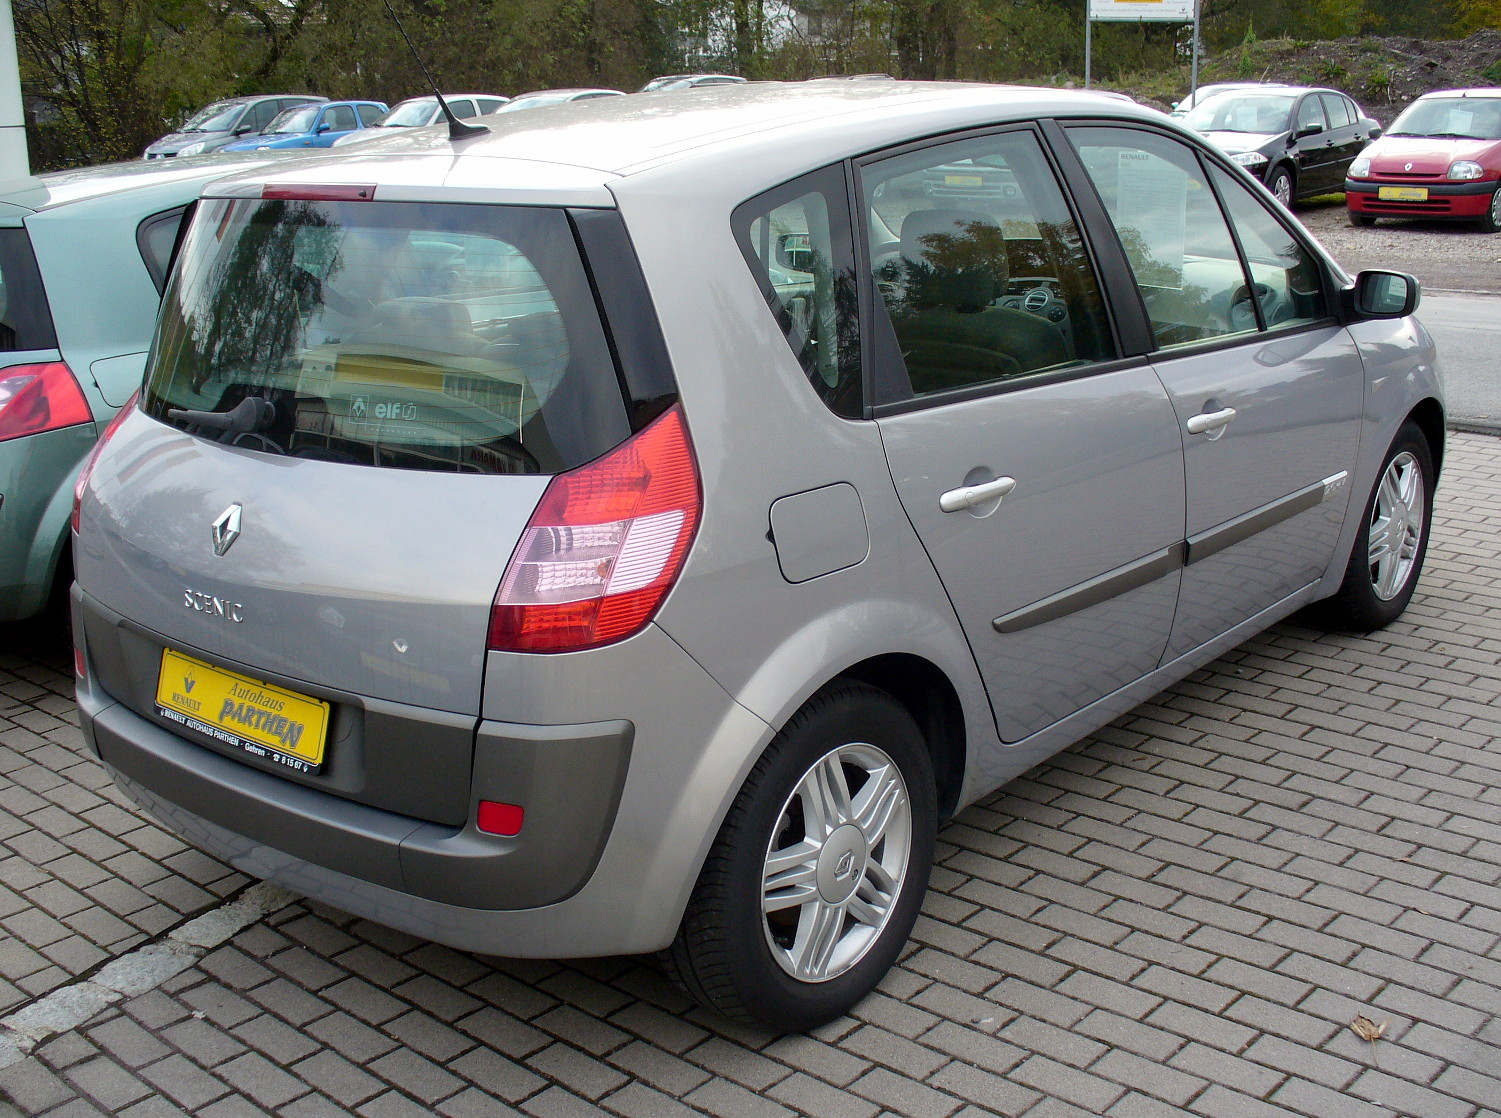 renault scenic related images start 50 weili automotive network. Black Bedroom Furniture Sets. Home Design Ideas